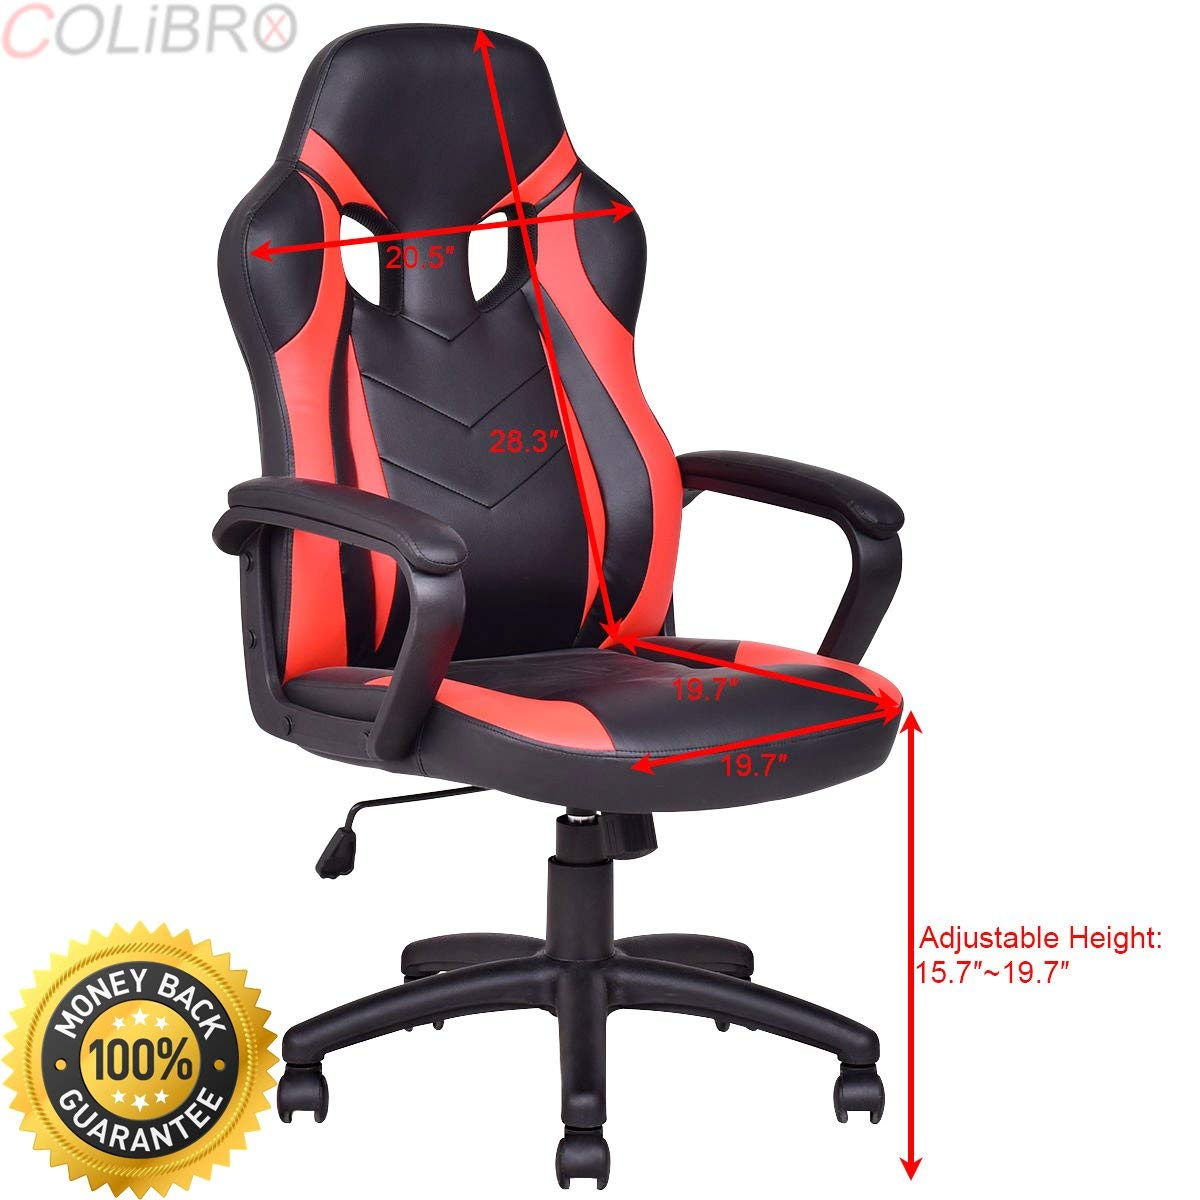 COLIBROX--High Back Executive Race Gaming Chair PU Leather Computer Desk Task Office Chair. best gaming chair. race gaming chair high back desk chair.ergonomic pu leather high back office chair.